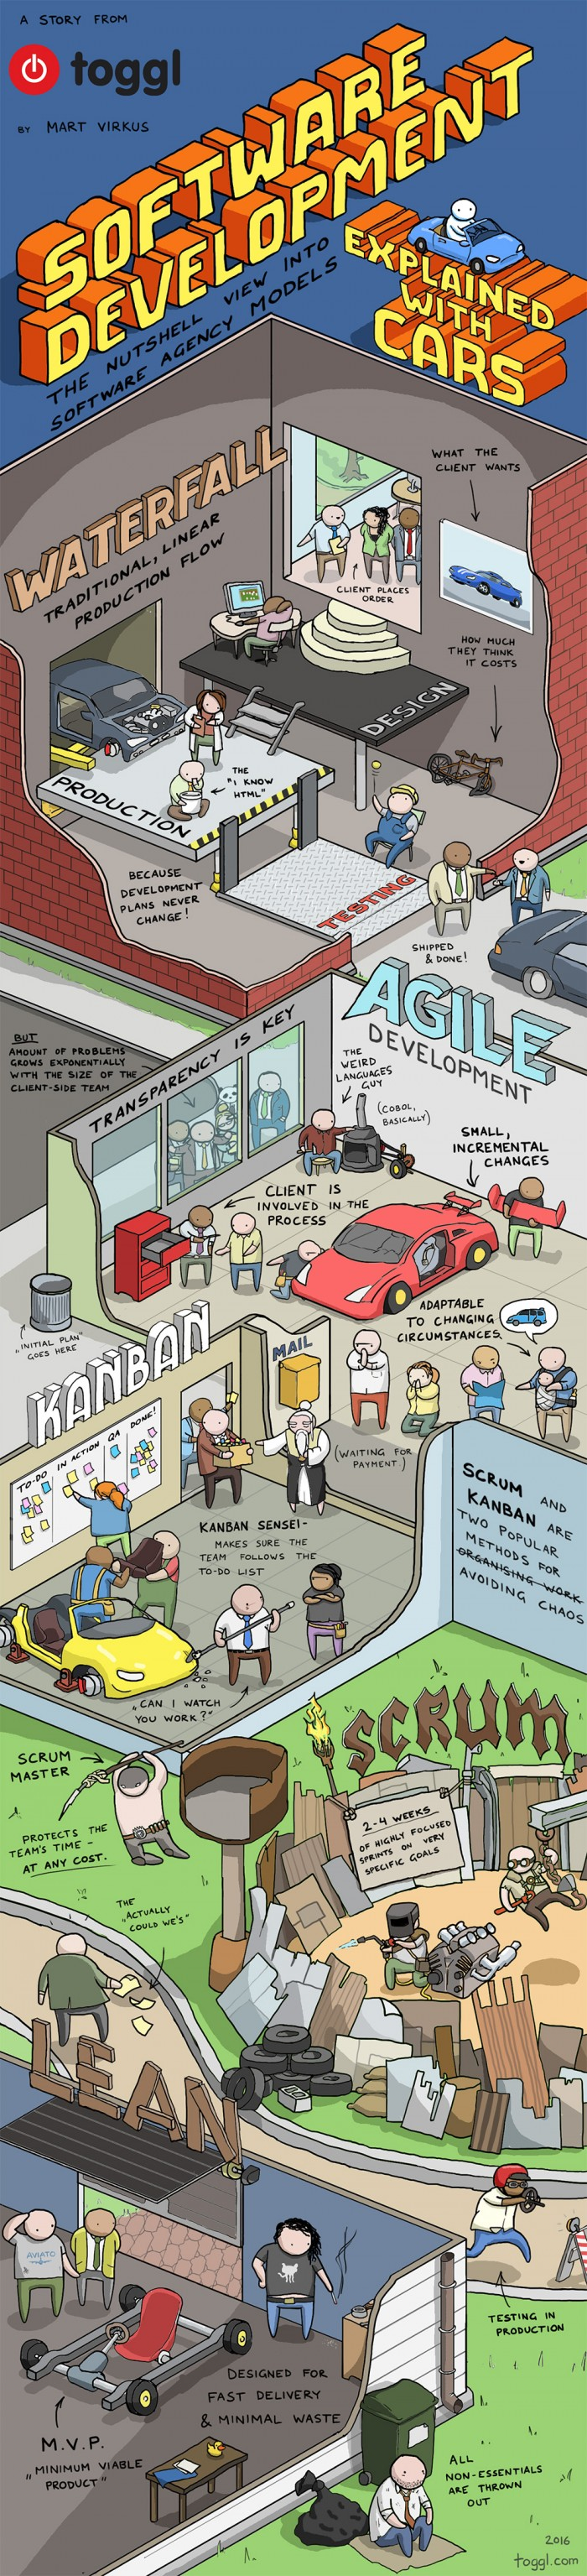 SOFTWARE DEVELOPMENT EXPLAINED WITH CARS